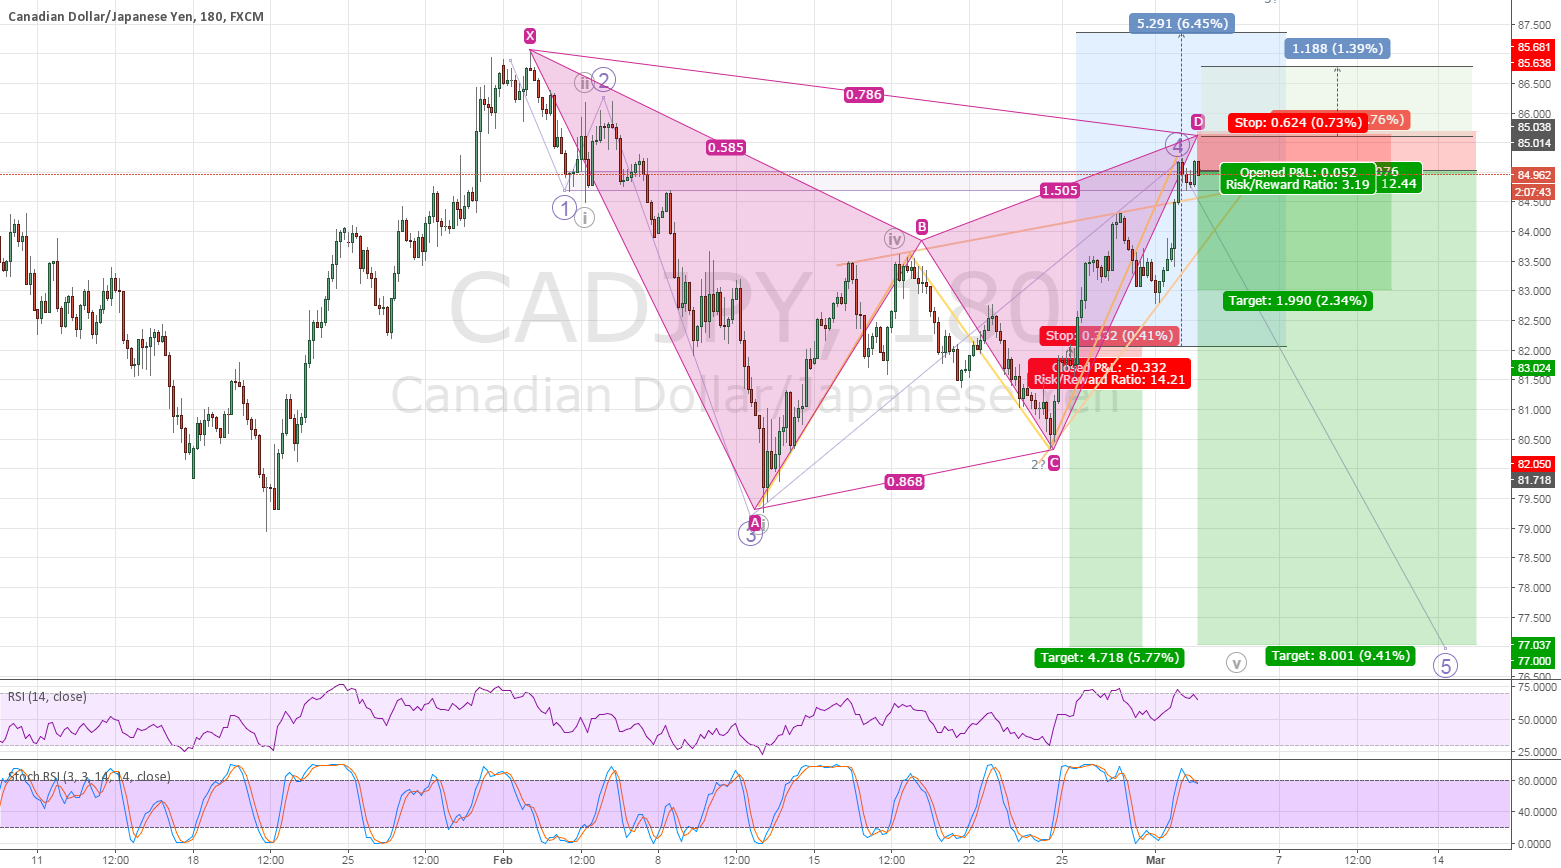 CADJPY (revised) 5th Wave